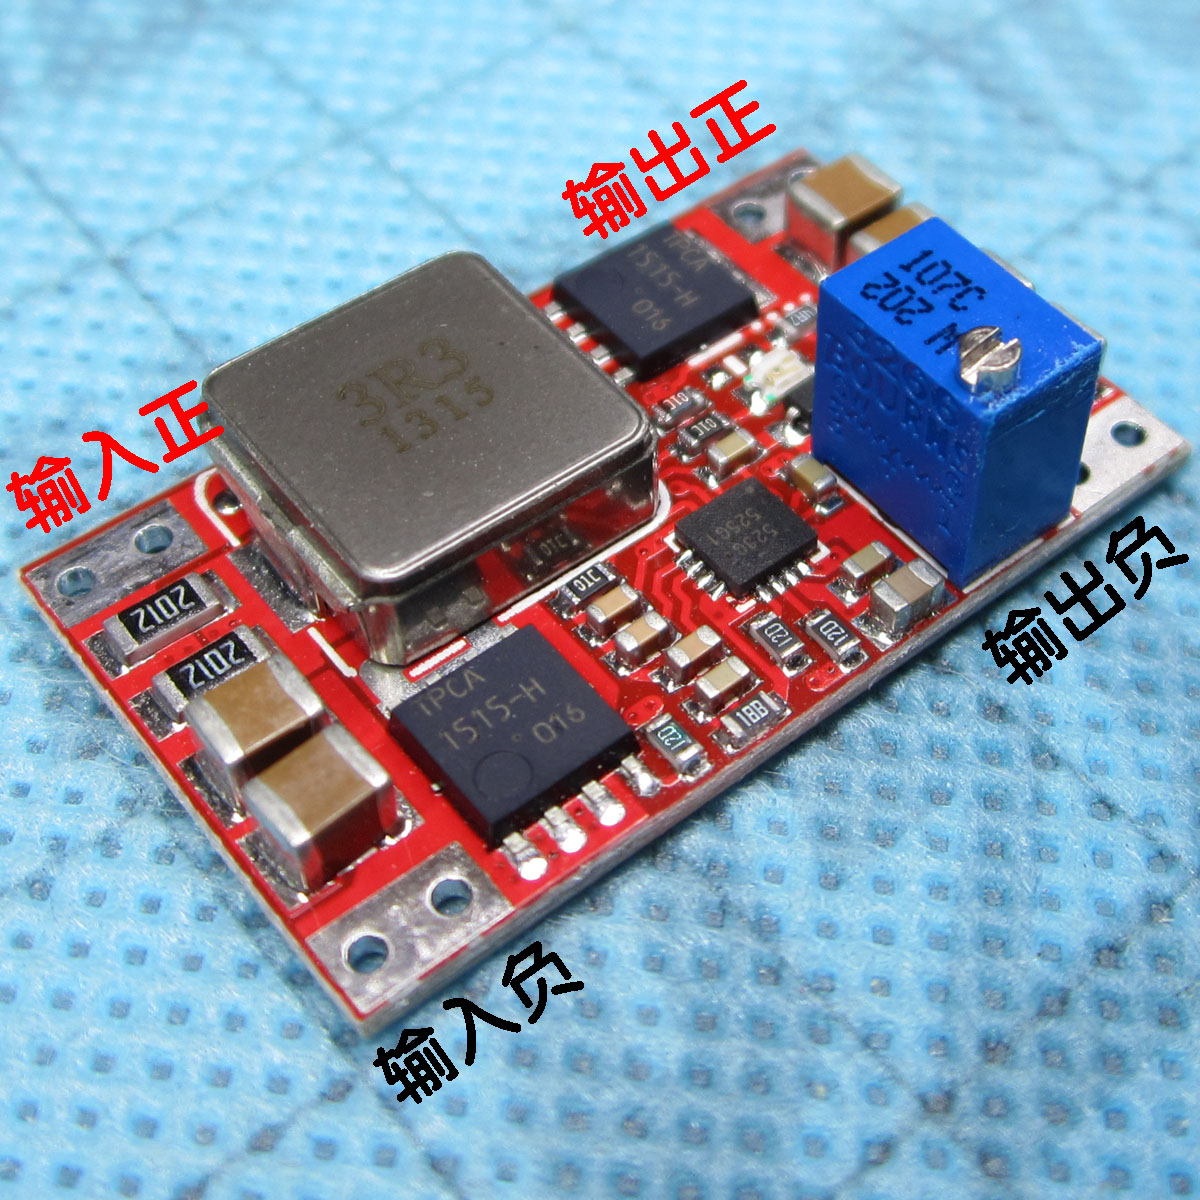 5V 12V 18V Mini 3786 Notebook Boost Board Mobile Power Boost Synchronous Rectifier High Efficiency bonatech ultra small mobile power board 3a high efficiency boost module with battery indicator